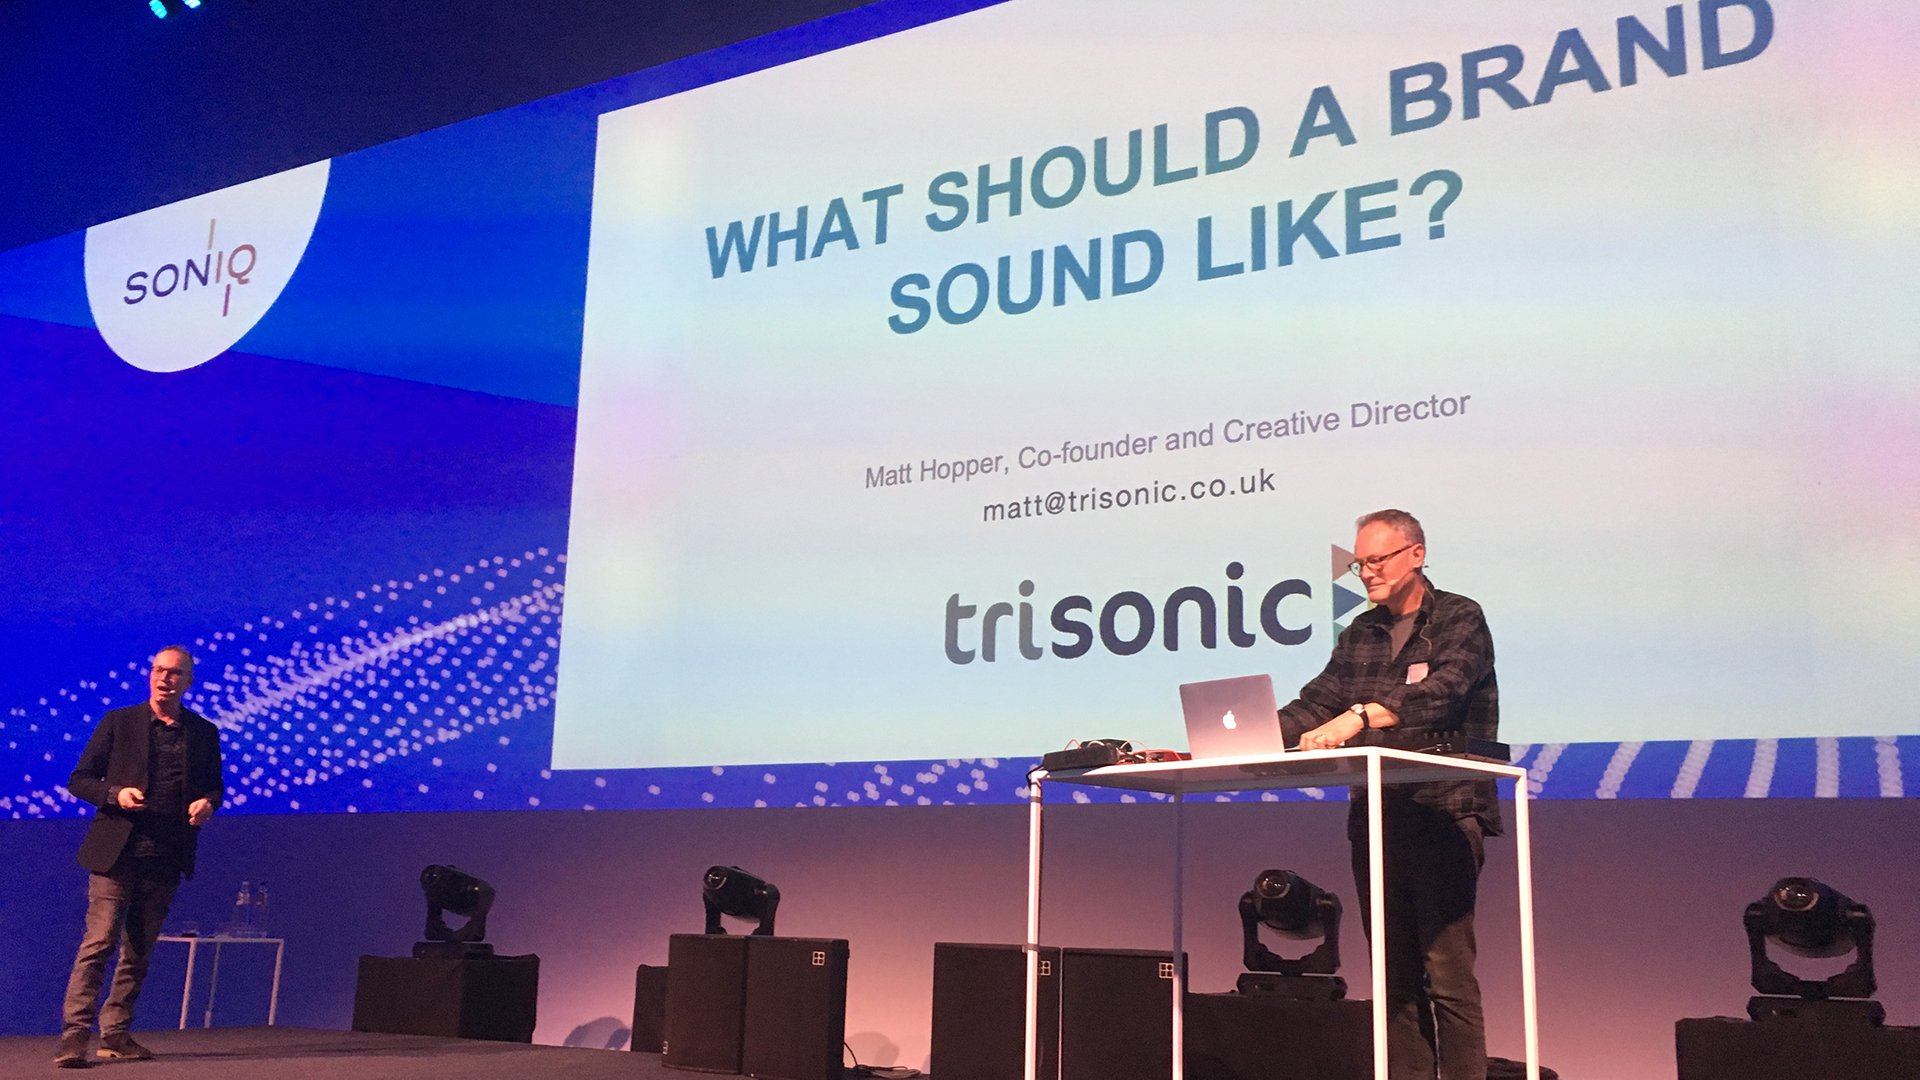 Trisonic's Matt Hopper and Johnny Griggs presenting a session about audio branding at the Soniq Awards in Brussels